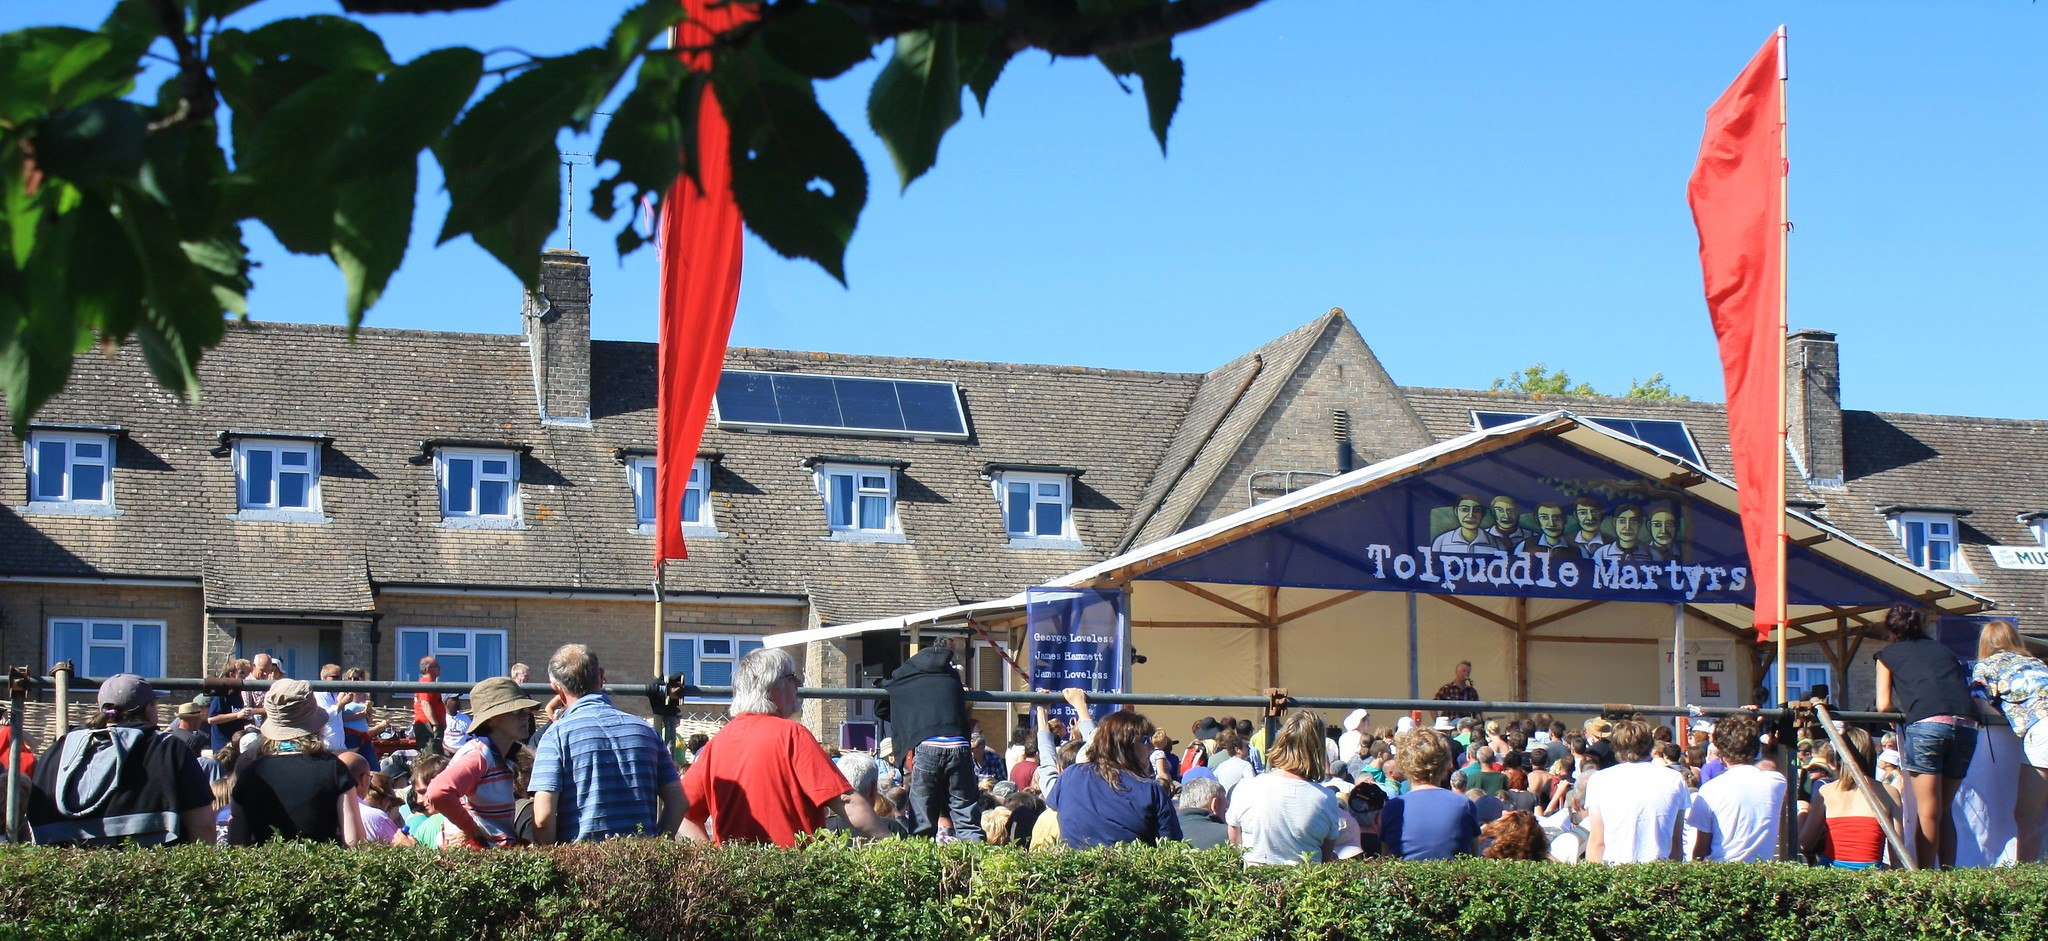 Tolpuddle Festival | The Monmouth Rebellion in Dorset